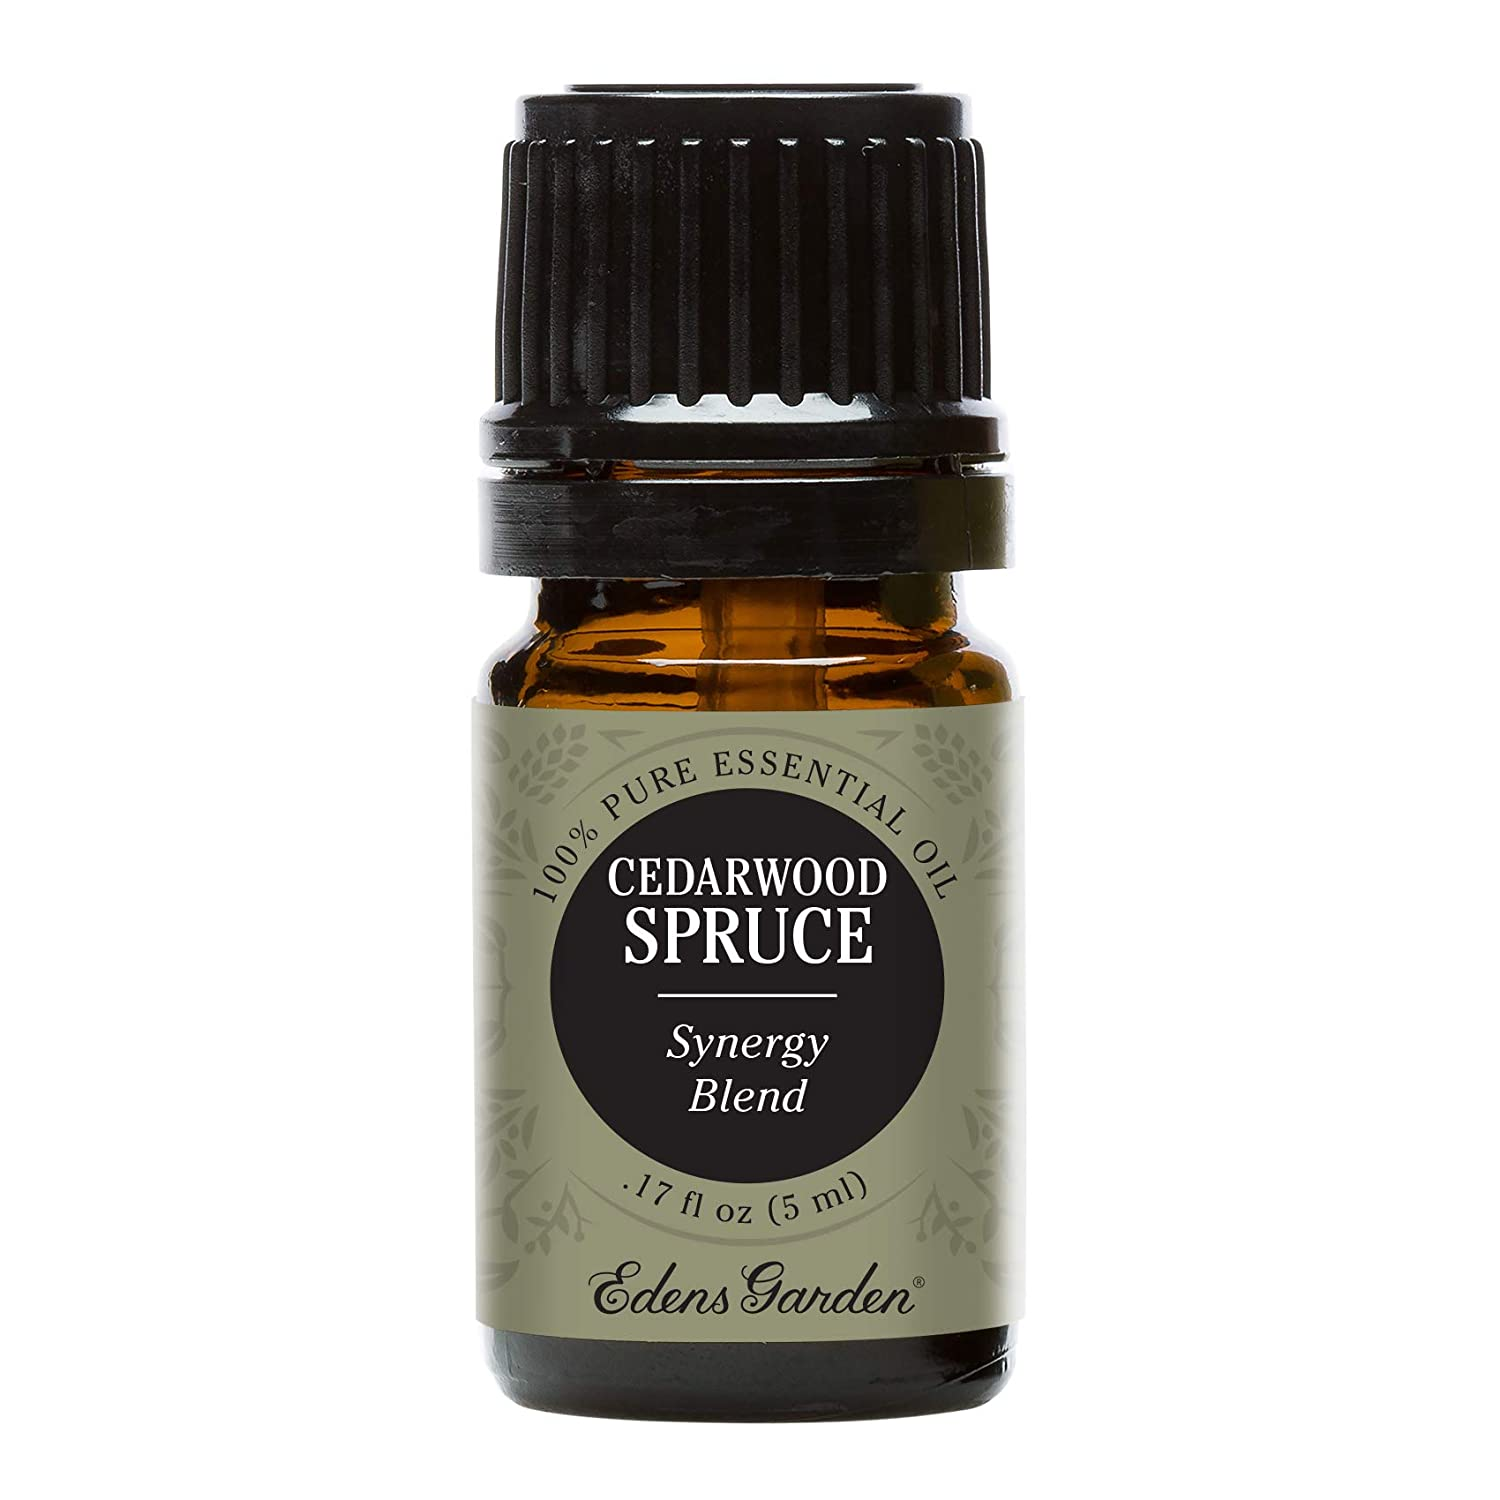 Edens Garden Cedarwood Spruce Essential Oil Synergy Blend, 100% Pure Therapeutic Grade (Cold Flu & Congestion) 5 ml